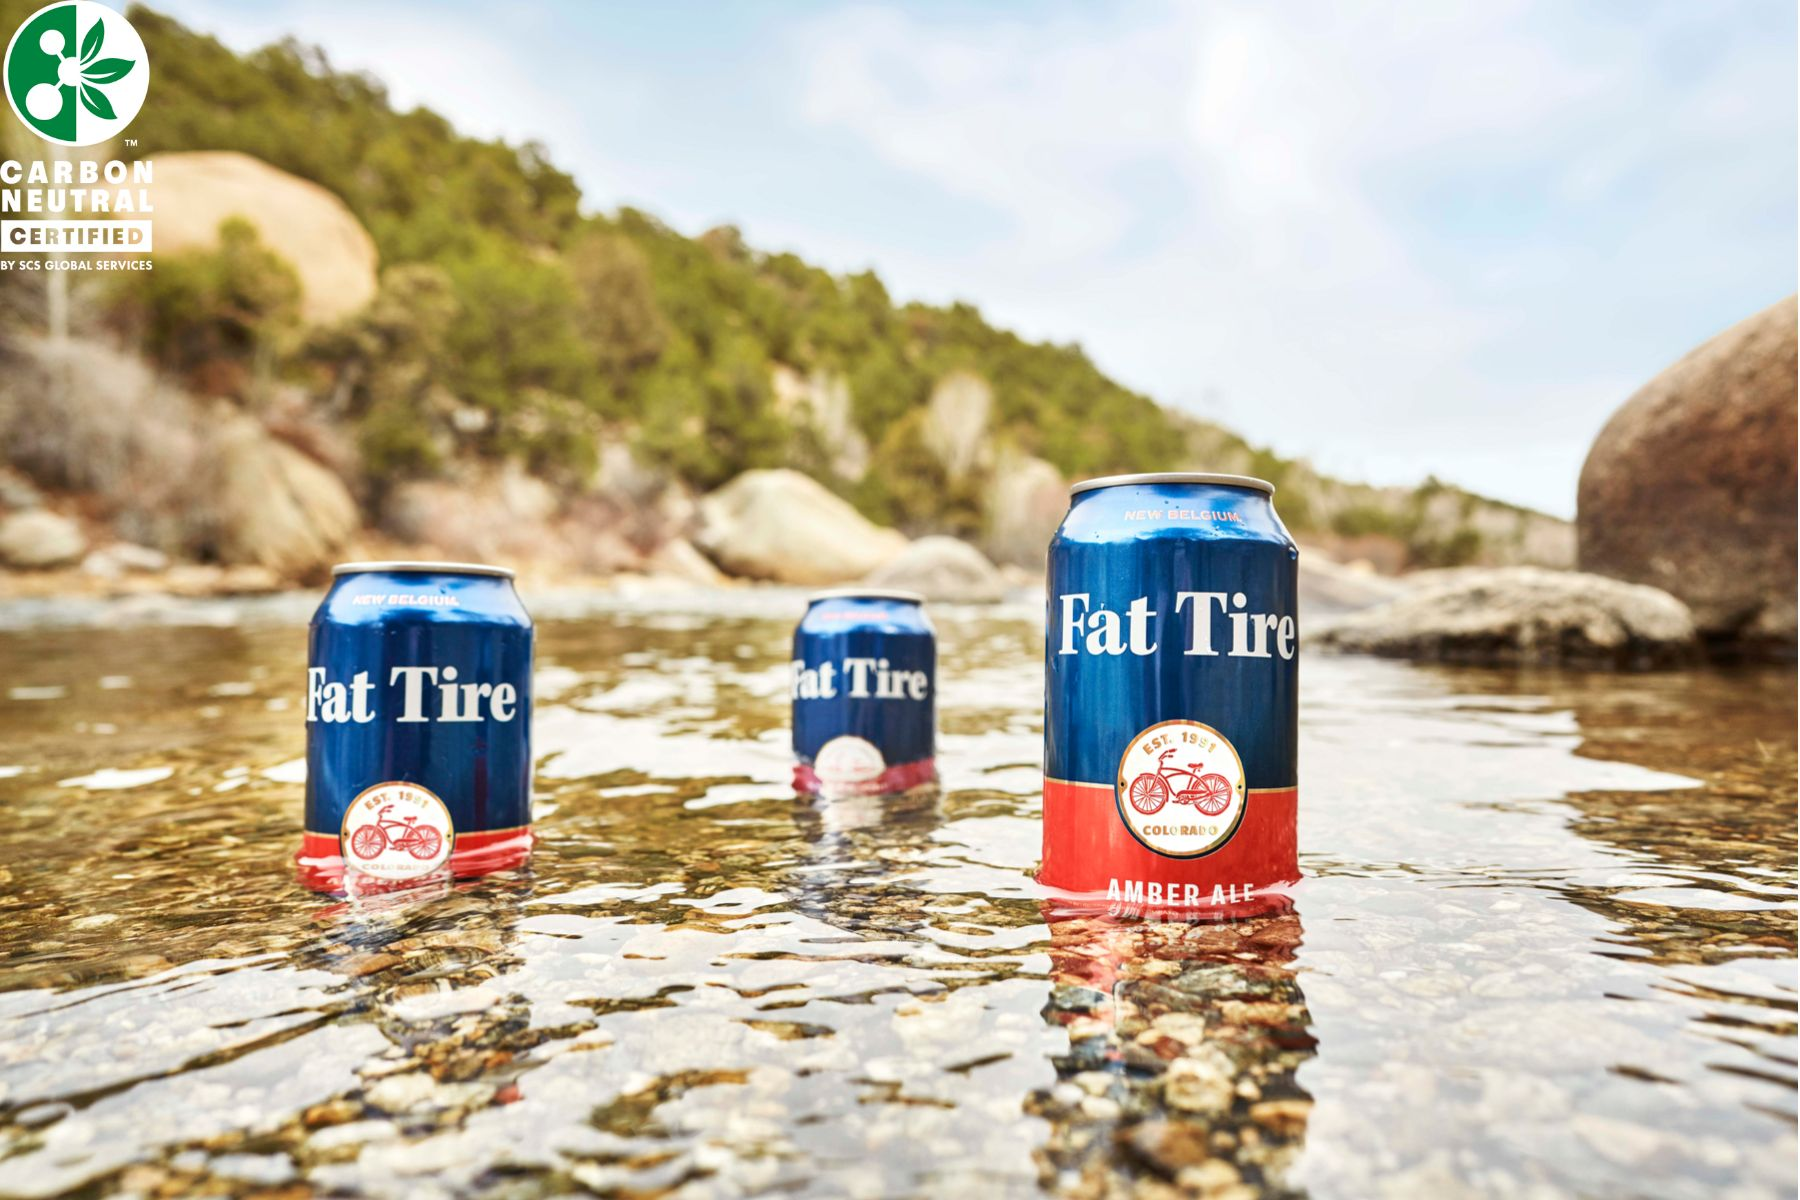 Fat Tire became the first carbon-neutral brew in 2020